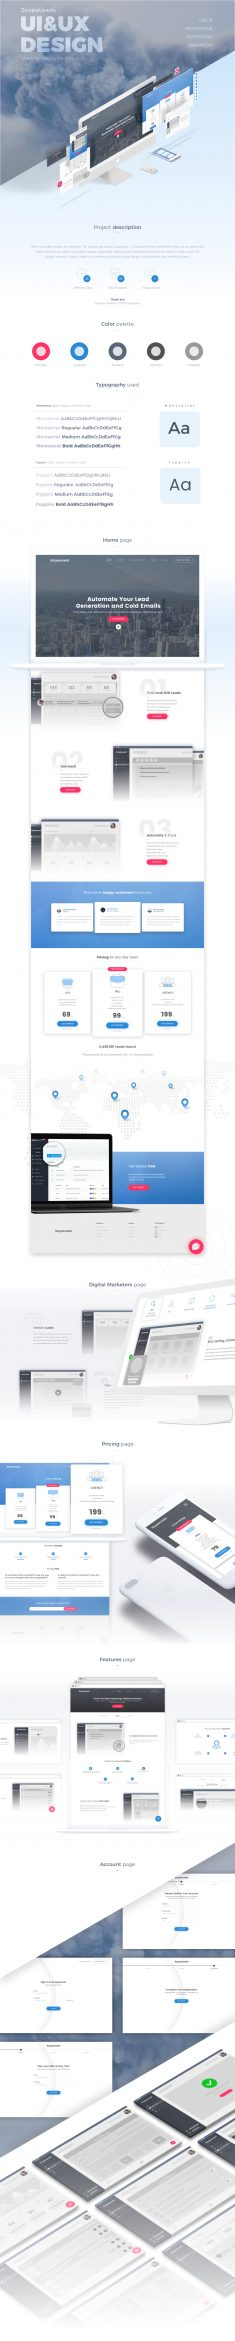 ScopeLeads – Website design (UI/UX)